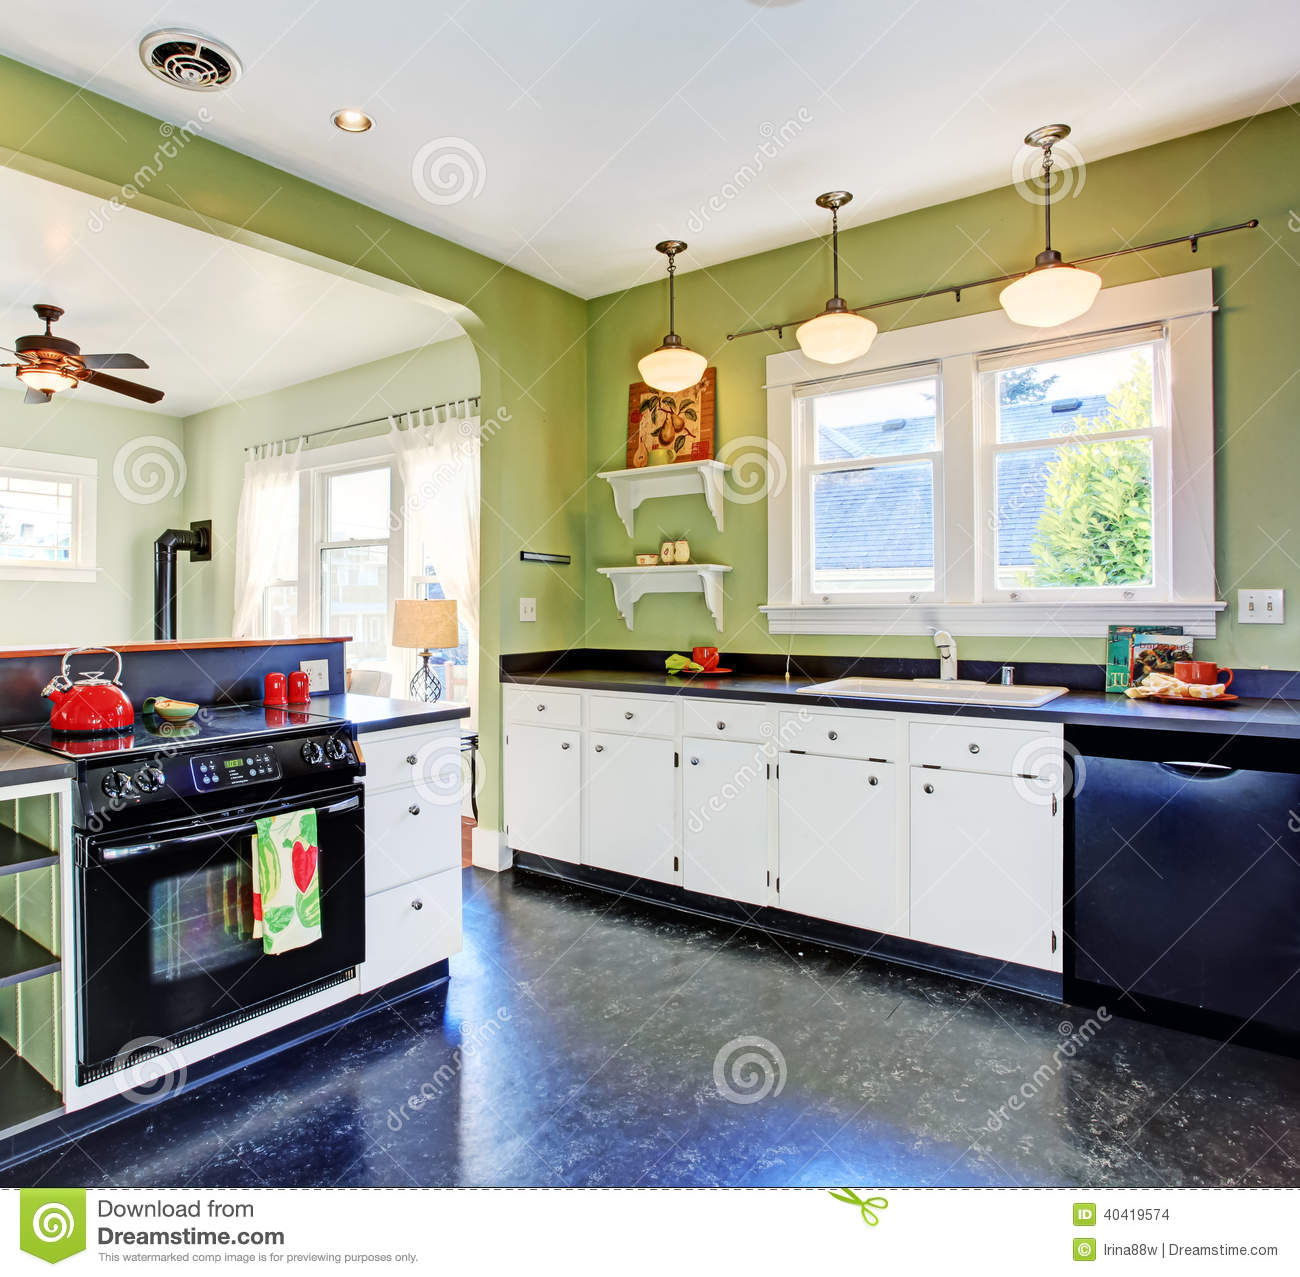 Kitchen With Green Walls: Kitchen Room Interior Stock Photo